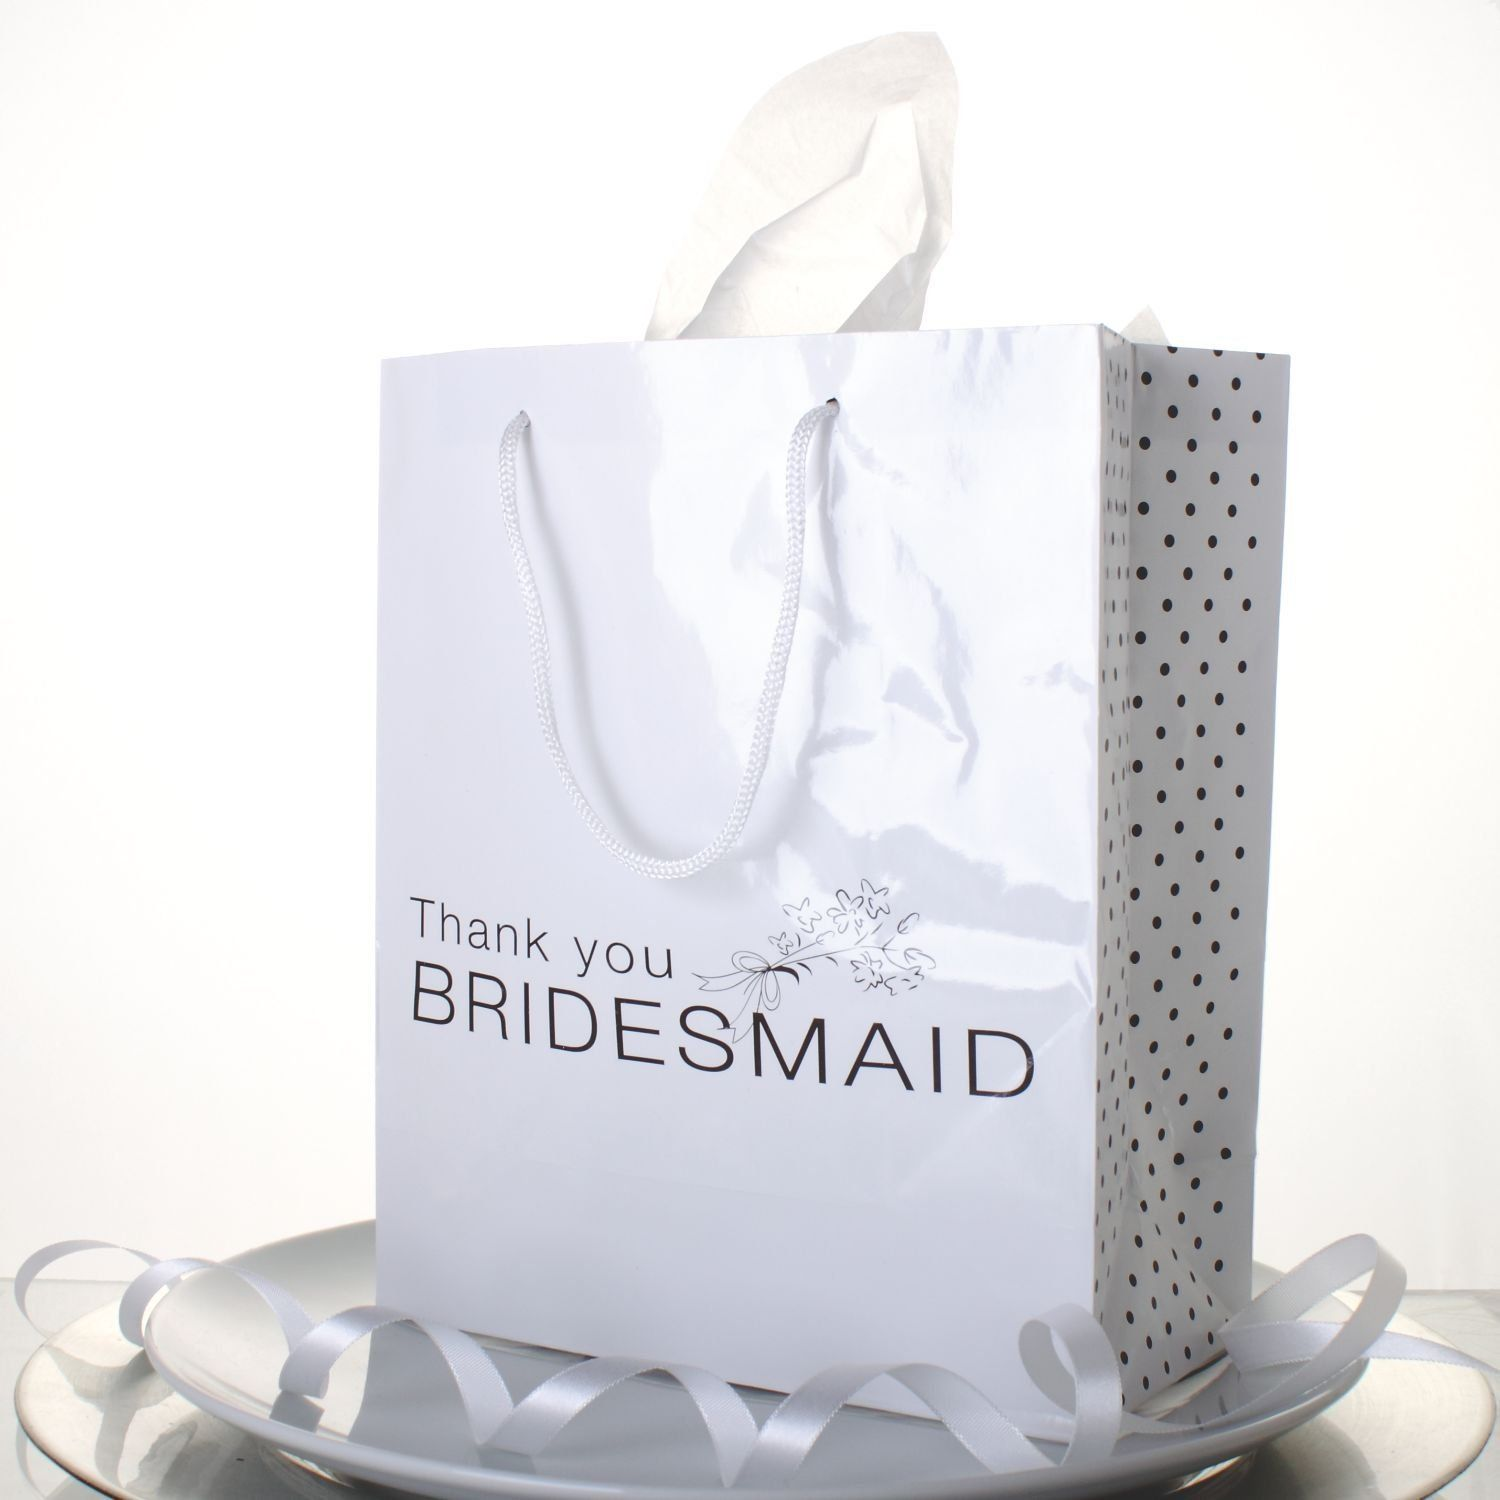 Wedding Party Gift Ideas For Bridesmaids: Lot Of 12 White Paper Thank You Bridesmaid Wedding Bridal